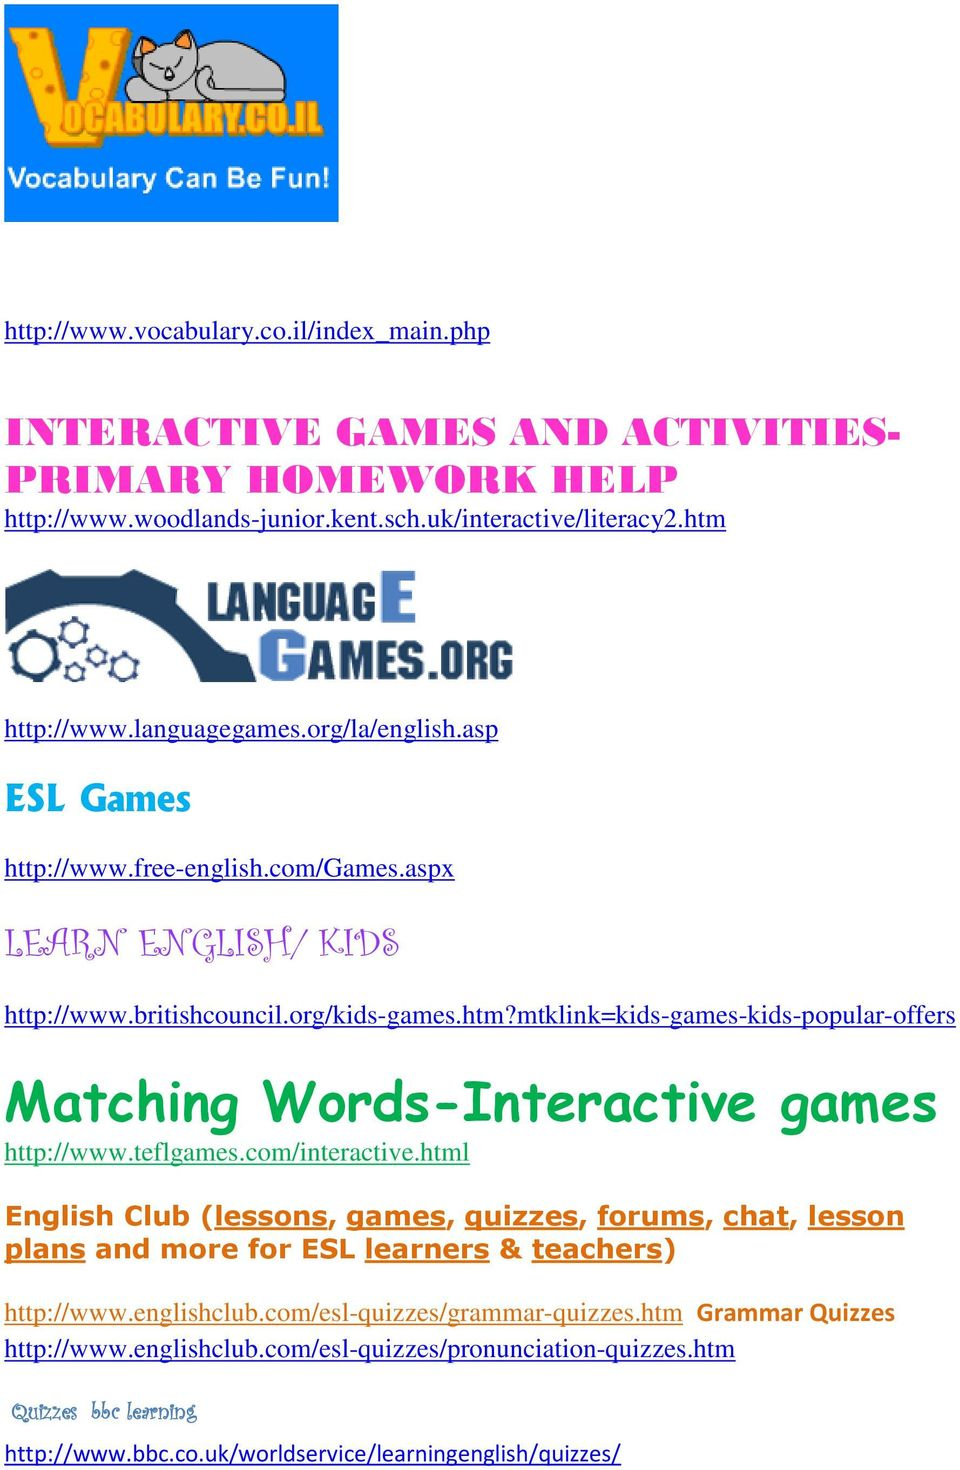 mtklink=kids-games-kids-popular-offers Matching Words-Interactive games http://www.teflgames.com/interactive.